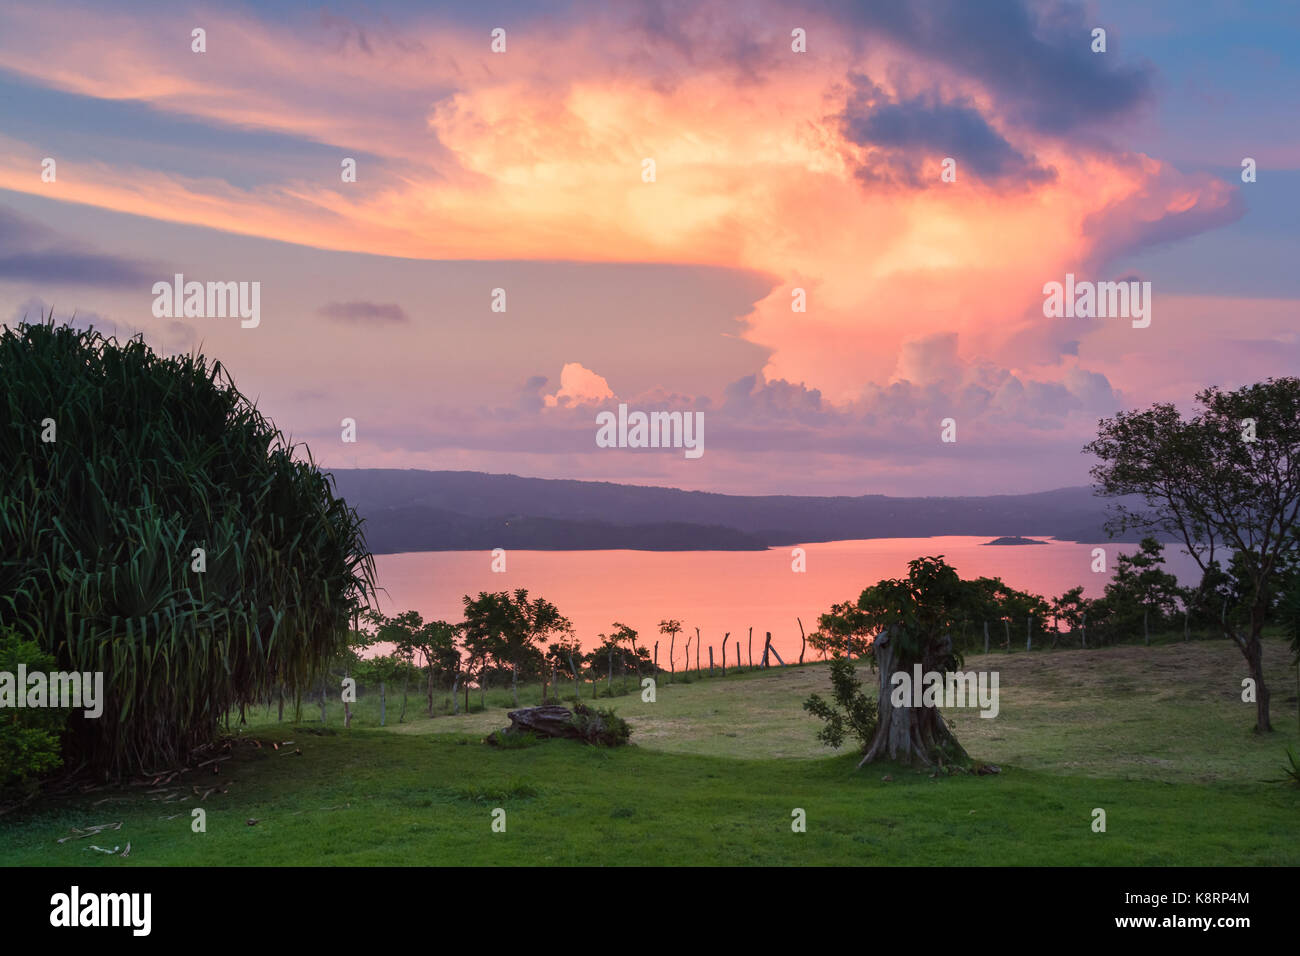 towering cloud reaching up towards the sky reflecting on Lake Arenal at the end of the day - Stock Image